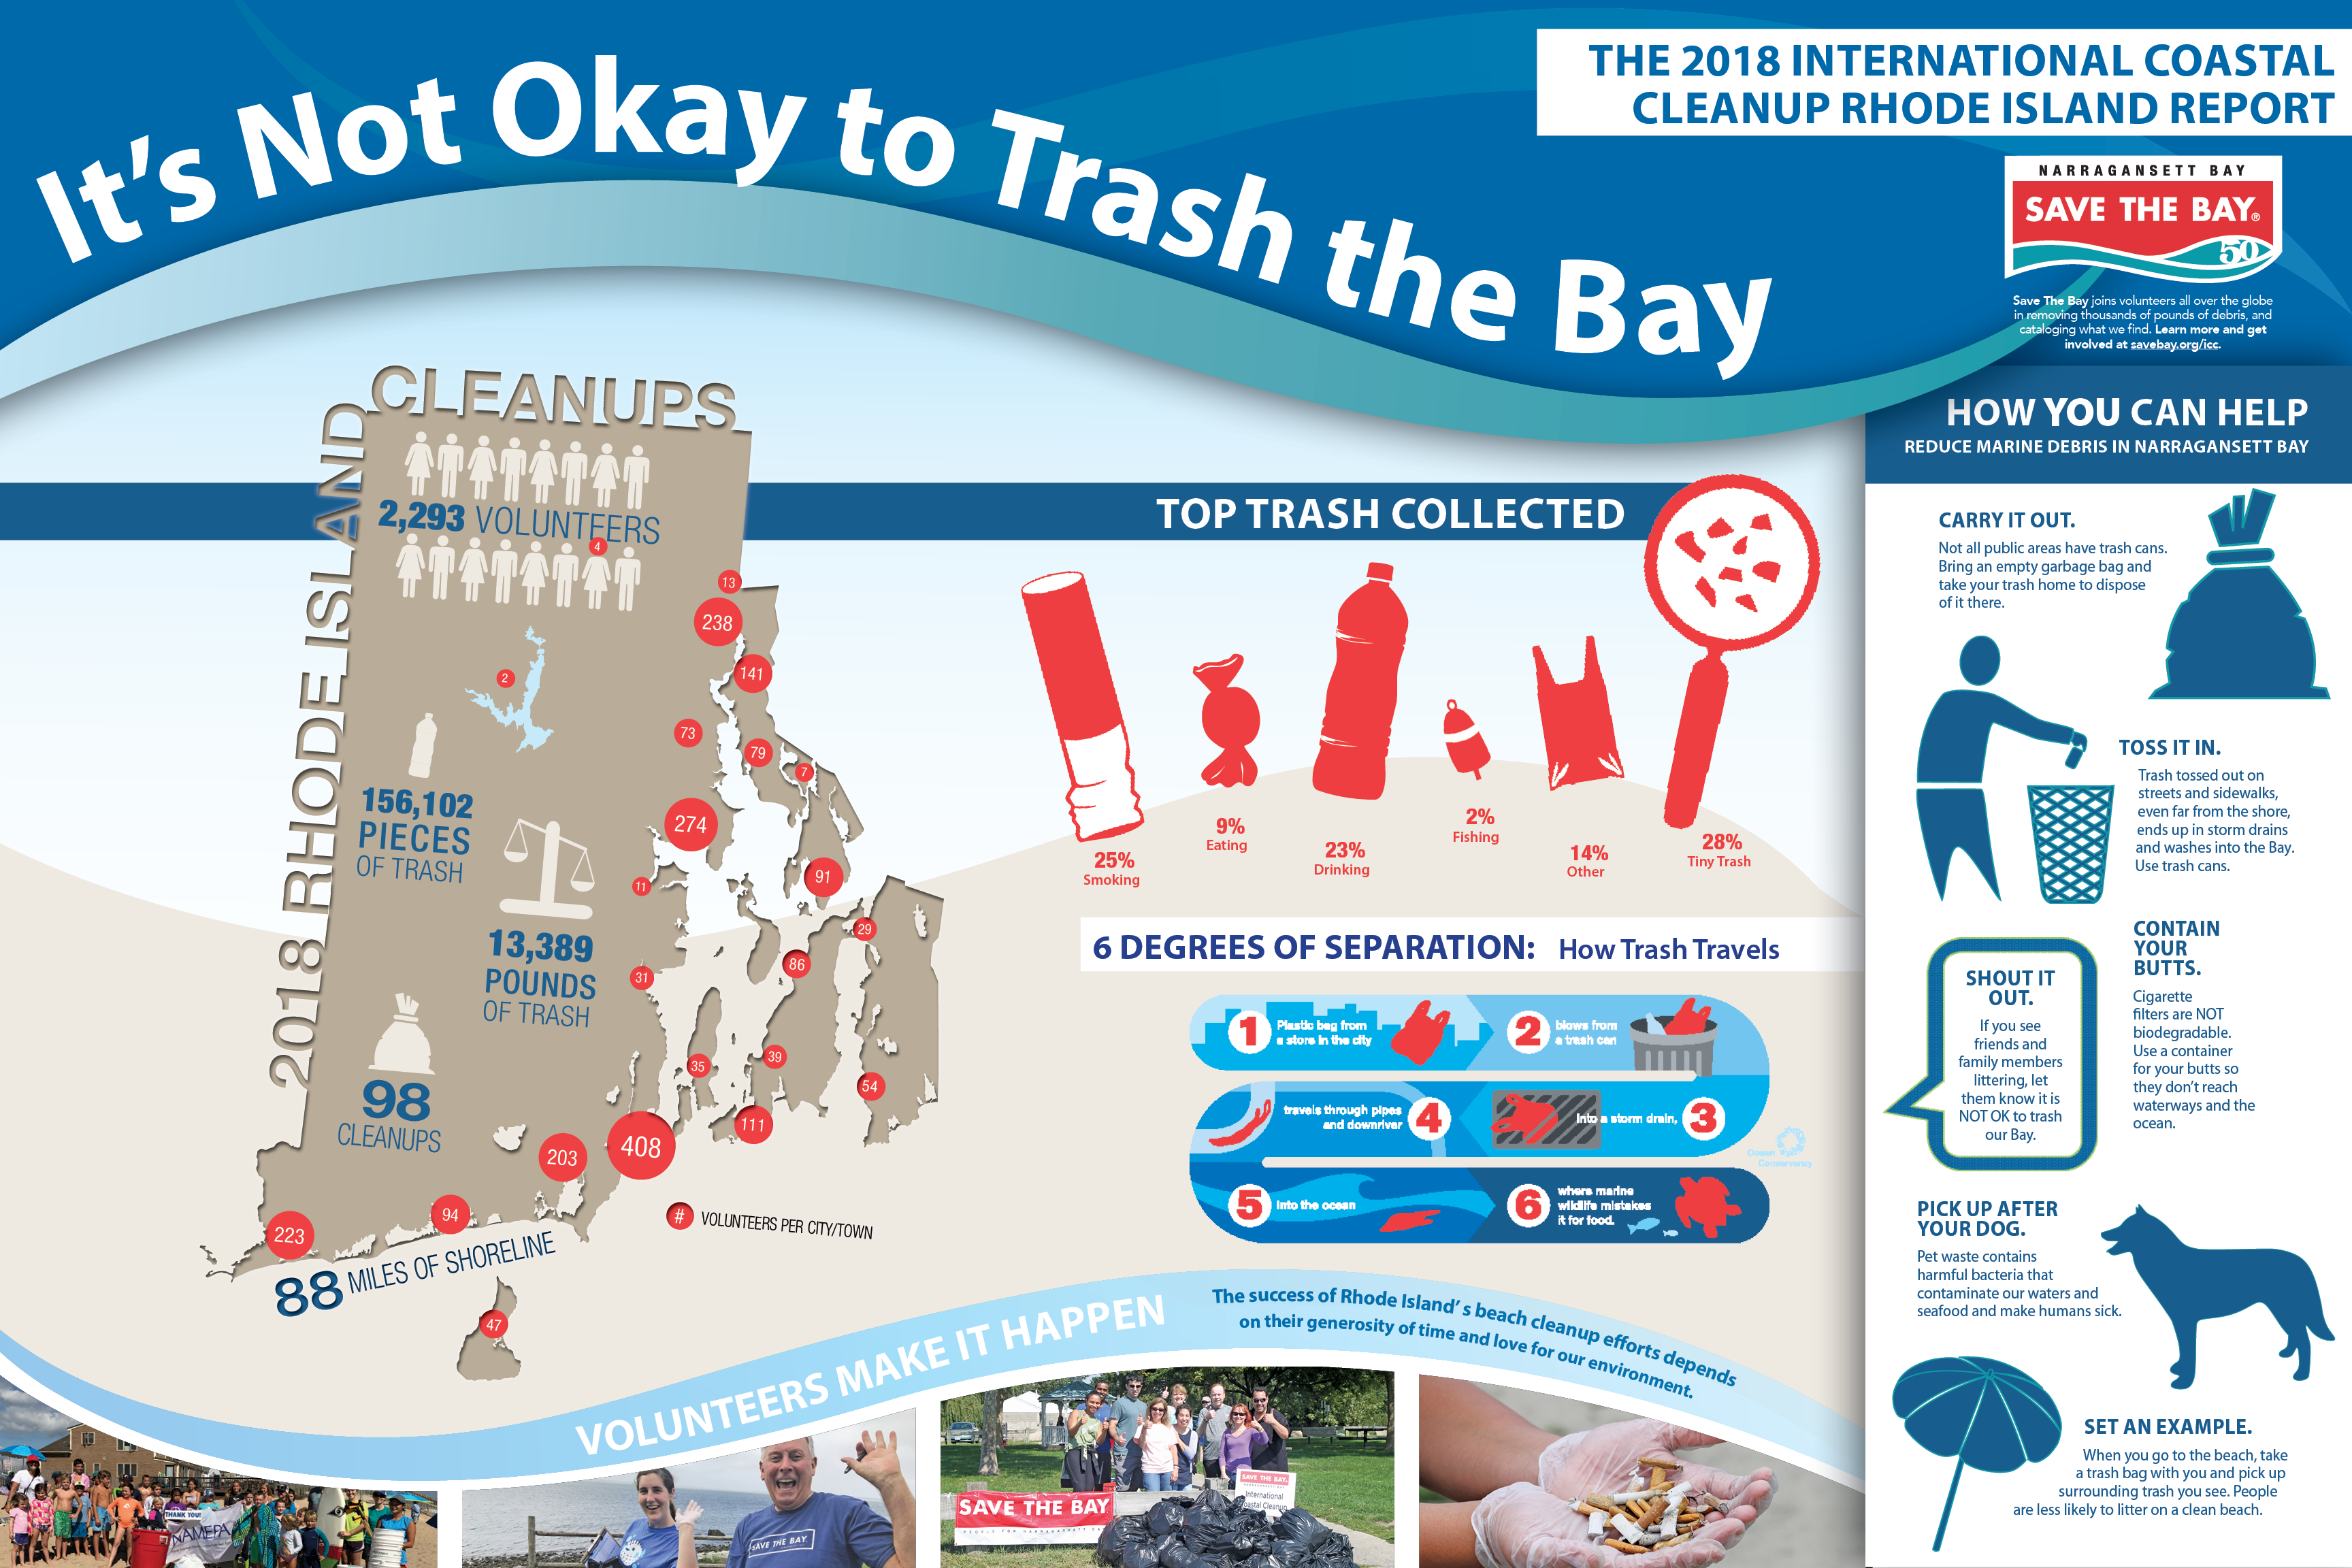 Explore the results from Rhode Island's 2018 International Coastal Cleanup efforts.